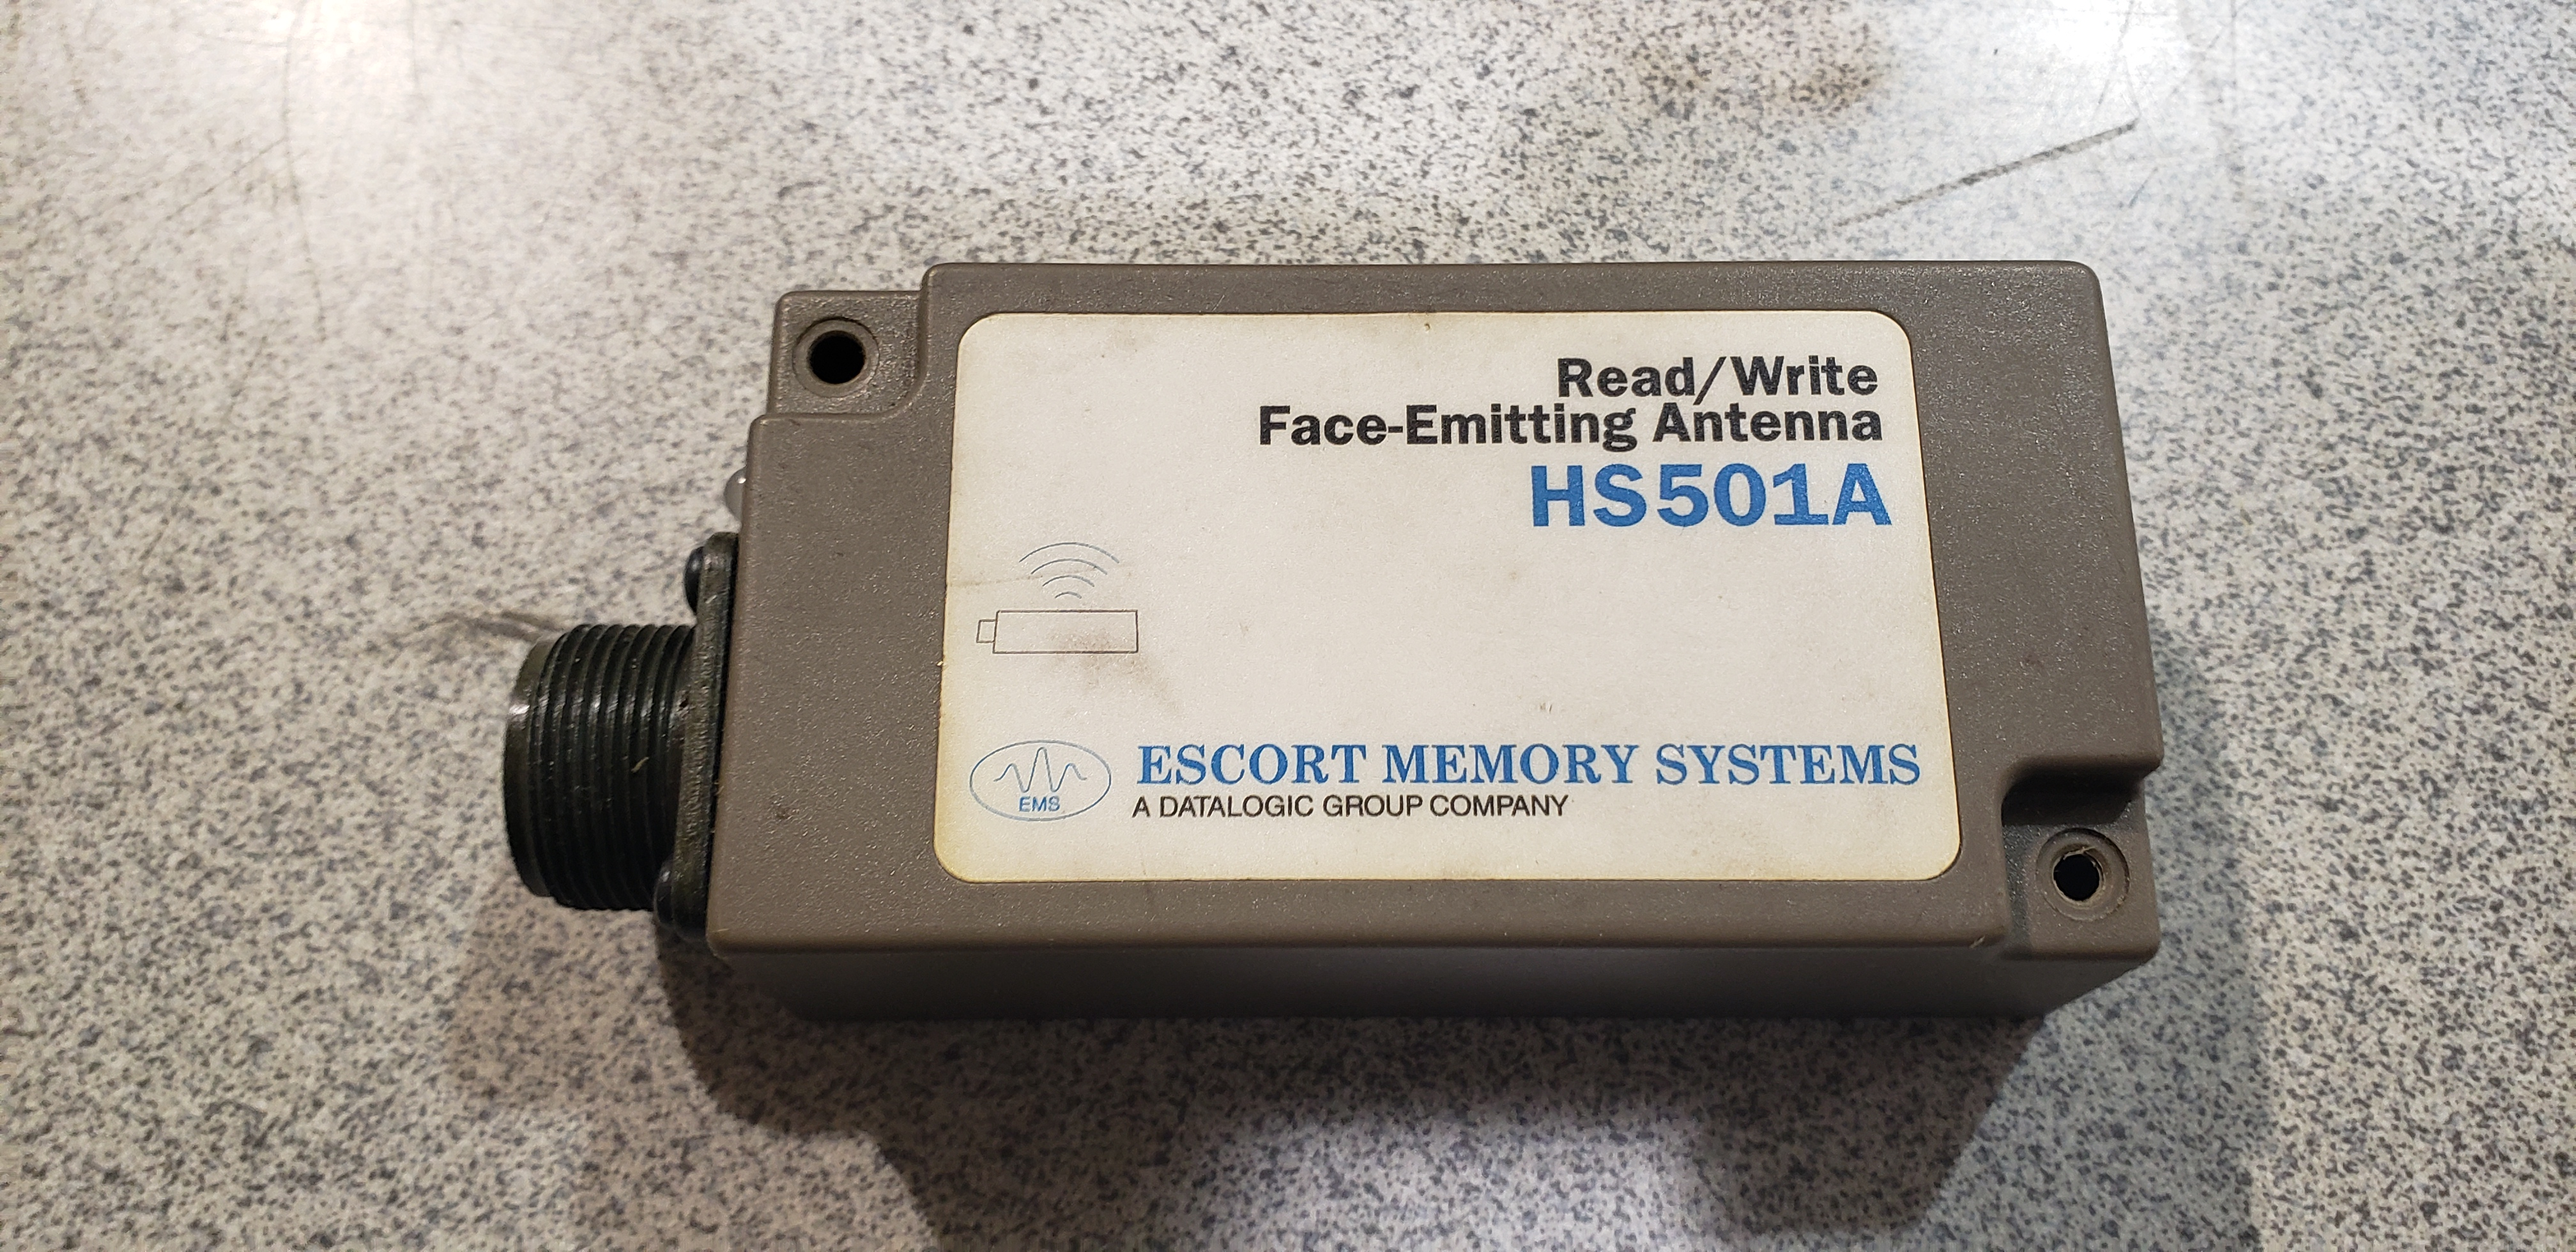 Escort Memory Systems Read-Write Face-Emitting Antenna HS501A